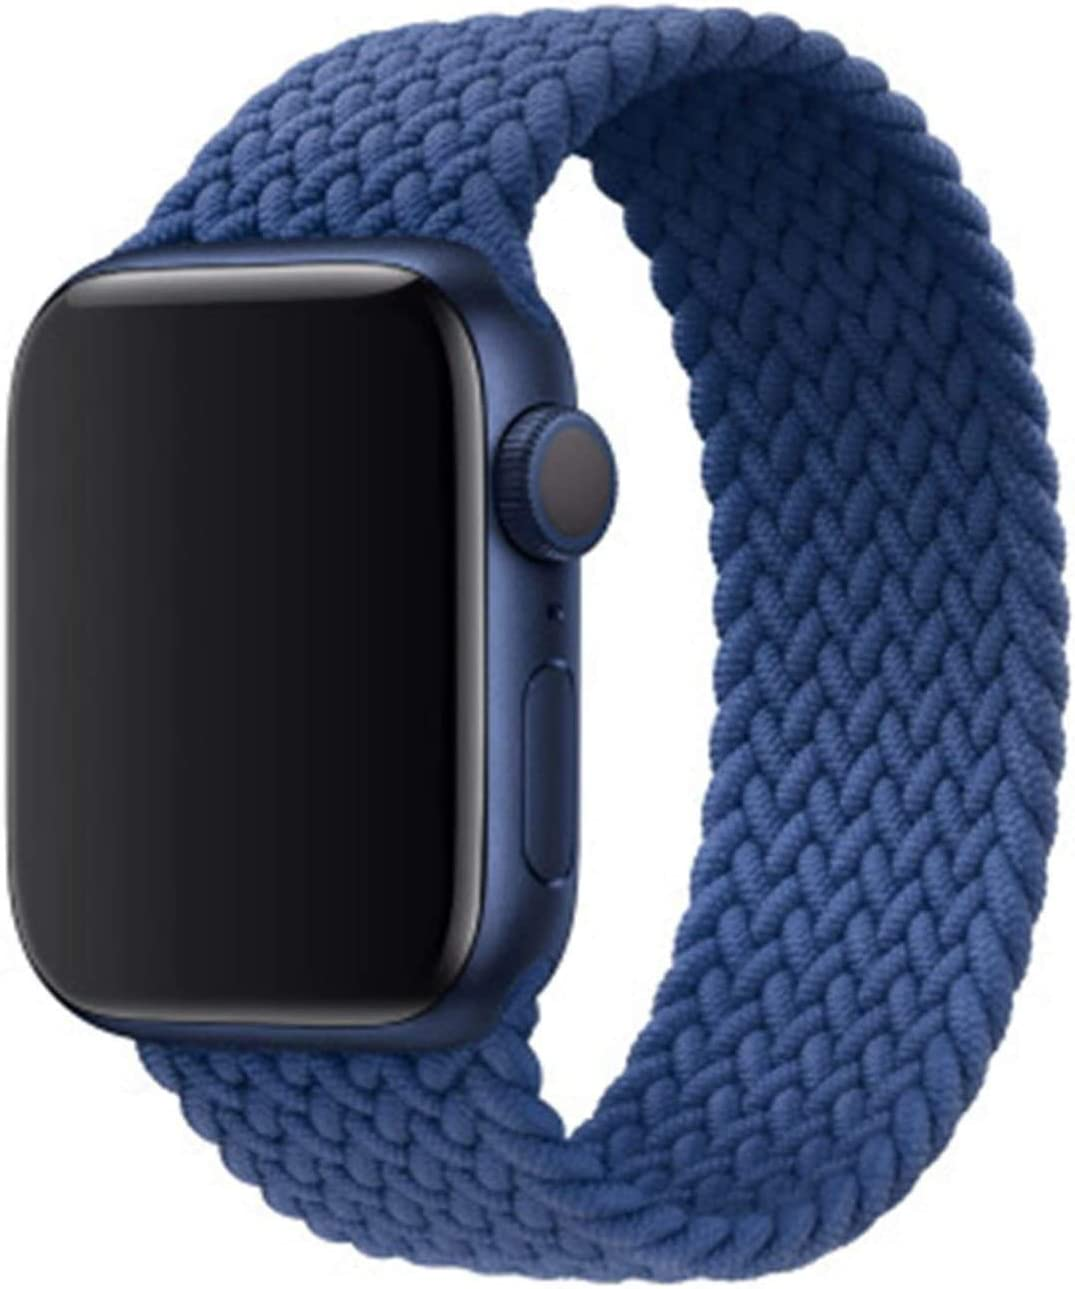 Yipintang Stretchy Braided Solo Loop Bands Compatible for Apple Watch 44mm 42mm, Stretch Braided Sport Elastics Weave Velcro Men Lightweight Strap Compatible for iWatch Series 6/5/4/3/2/1 SE XLarge